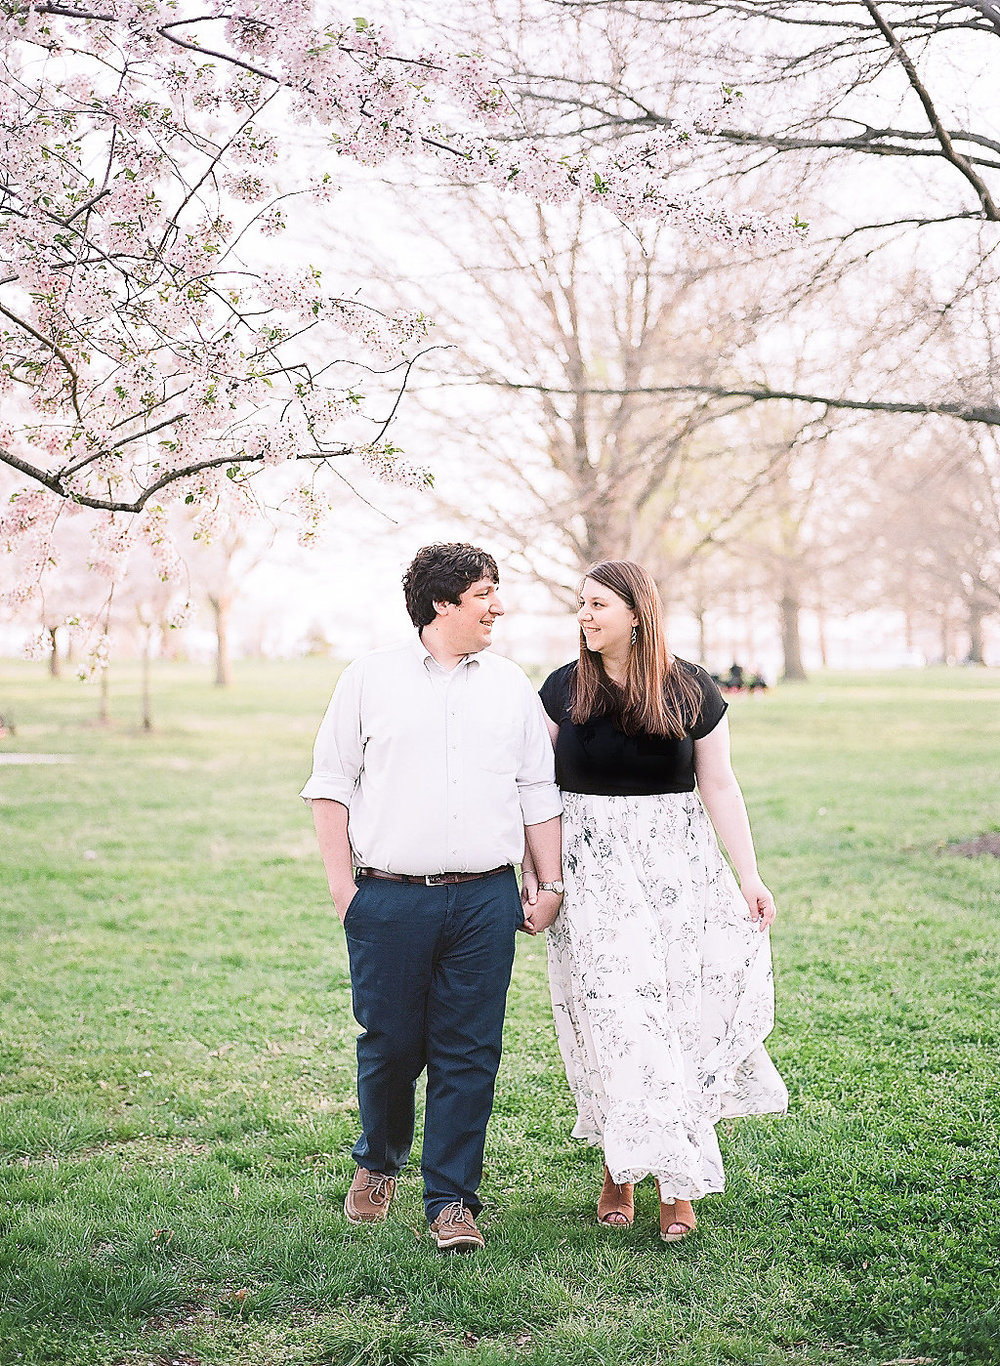 Cherry Blossom Engagement Photos   Andrea Rodway Photography